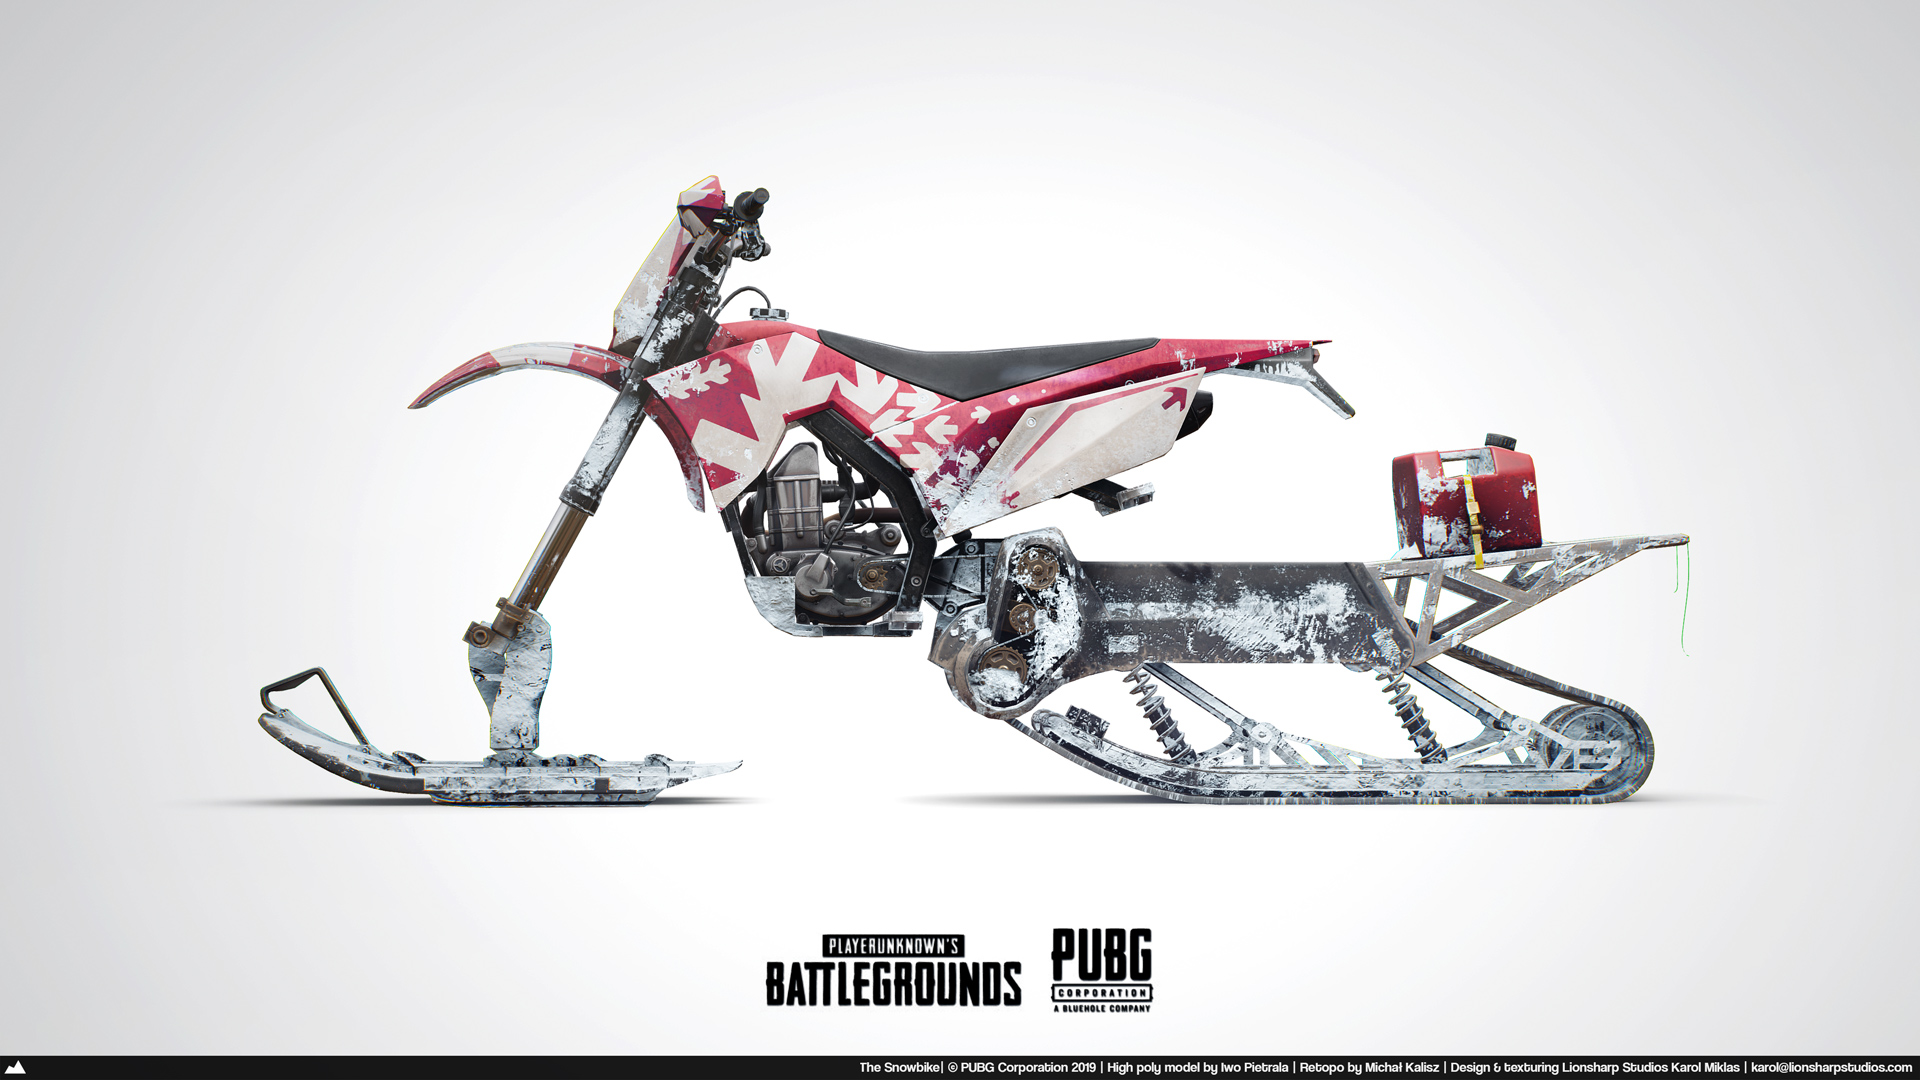 The Snow Motorcycle